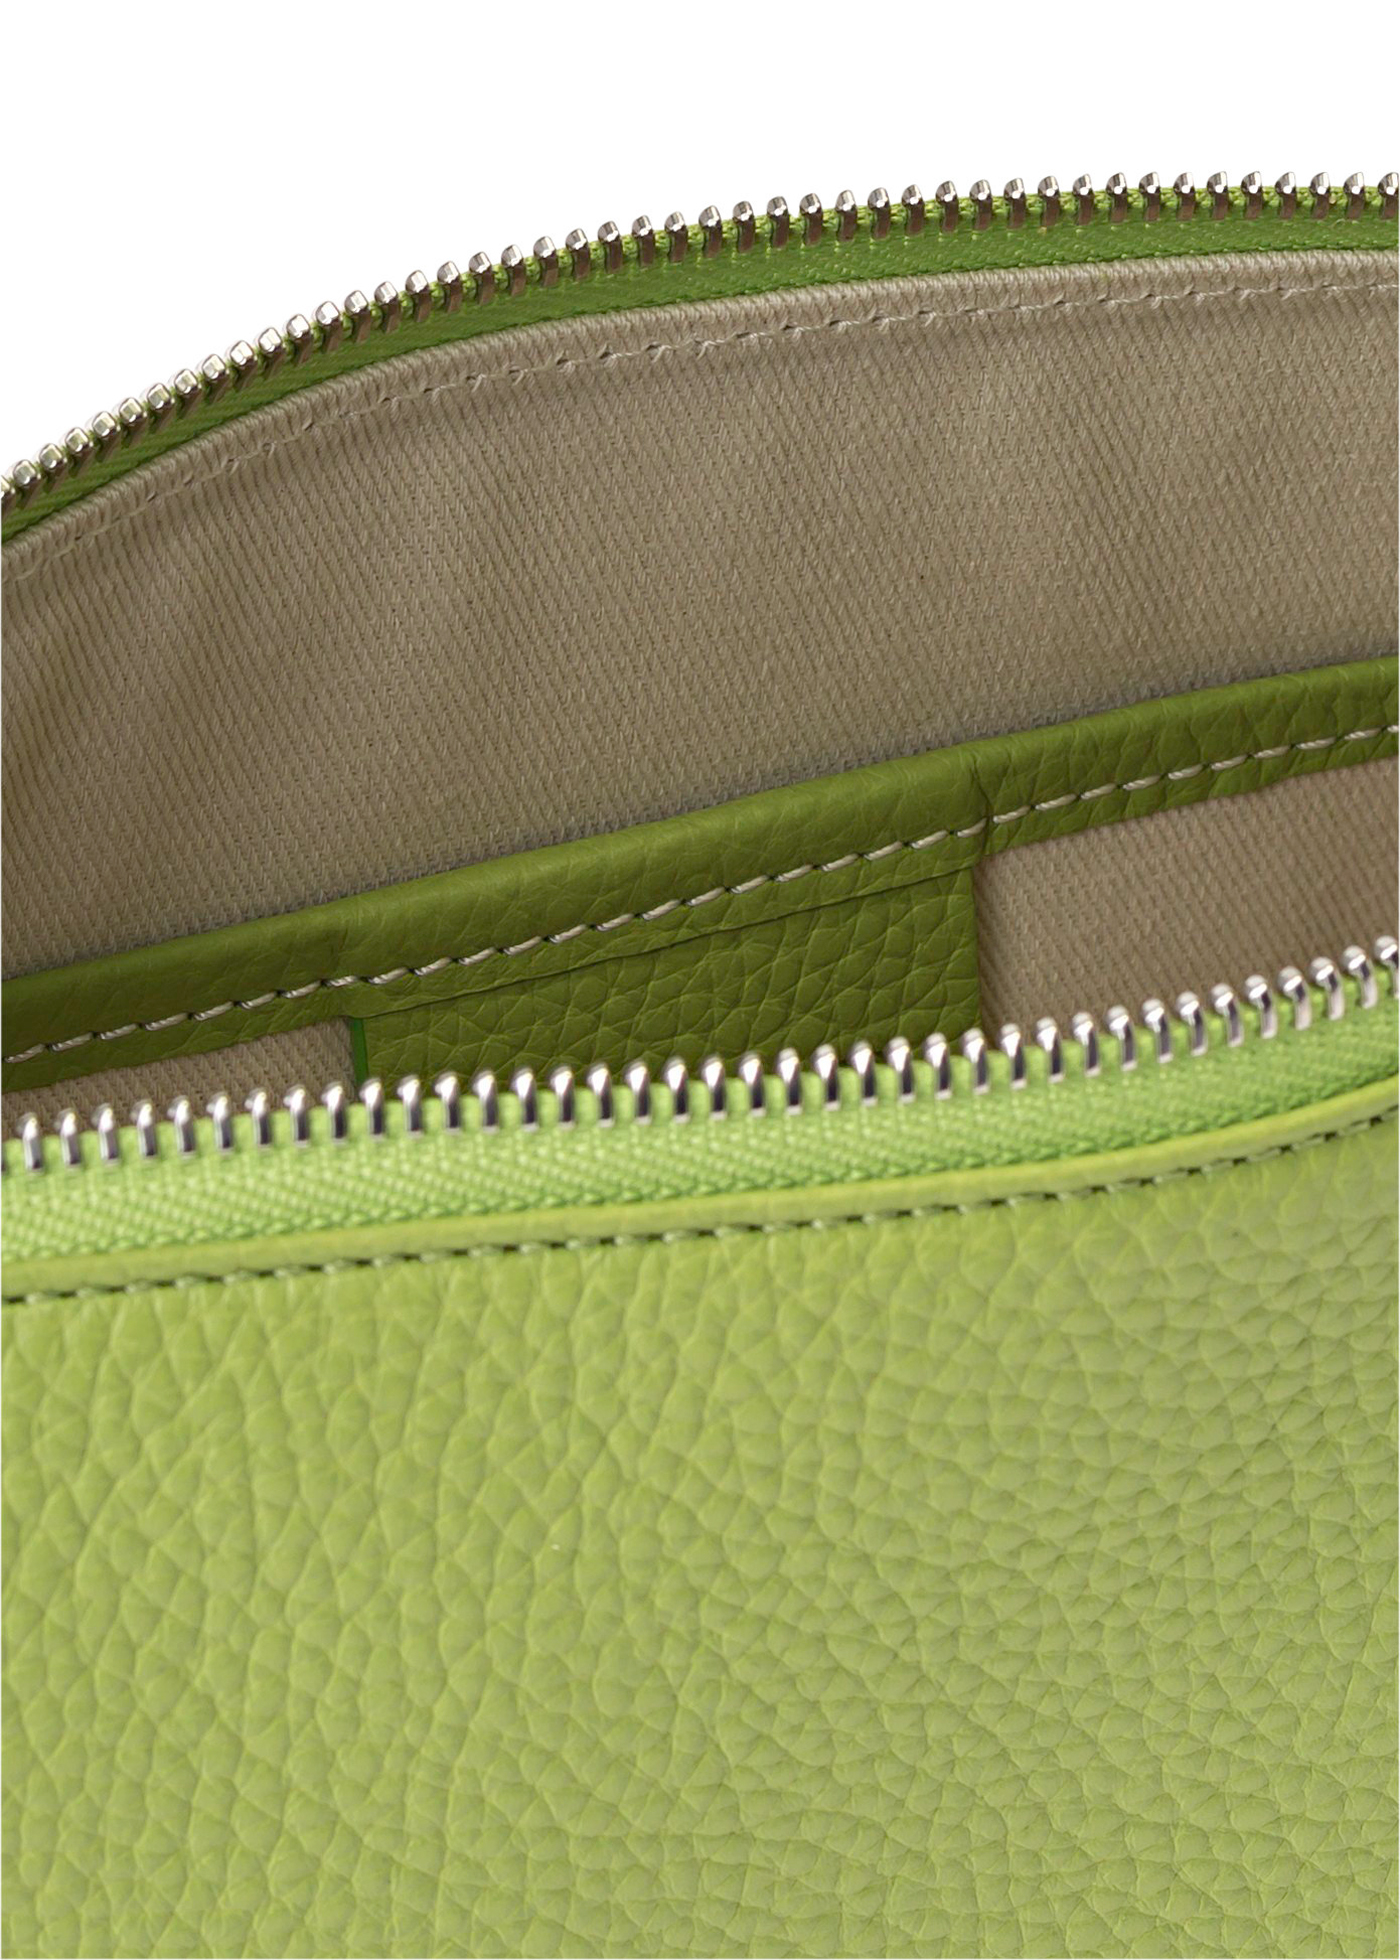 Mechi Lime Green Flat Grain Leather image number 3